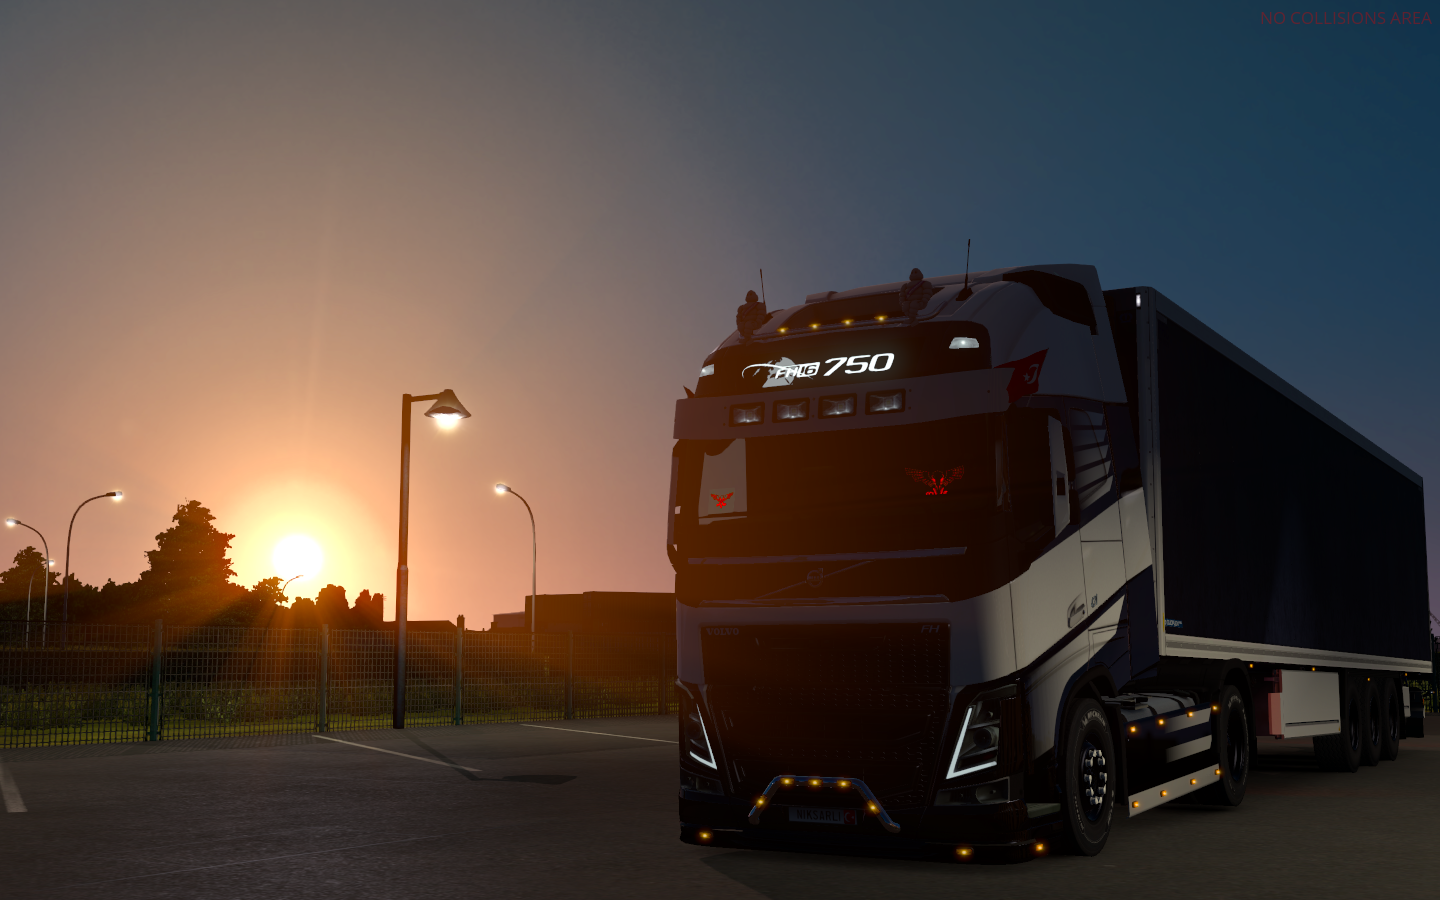 ets2_20190510_133456_00.png